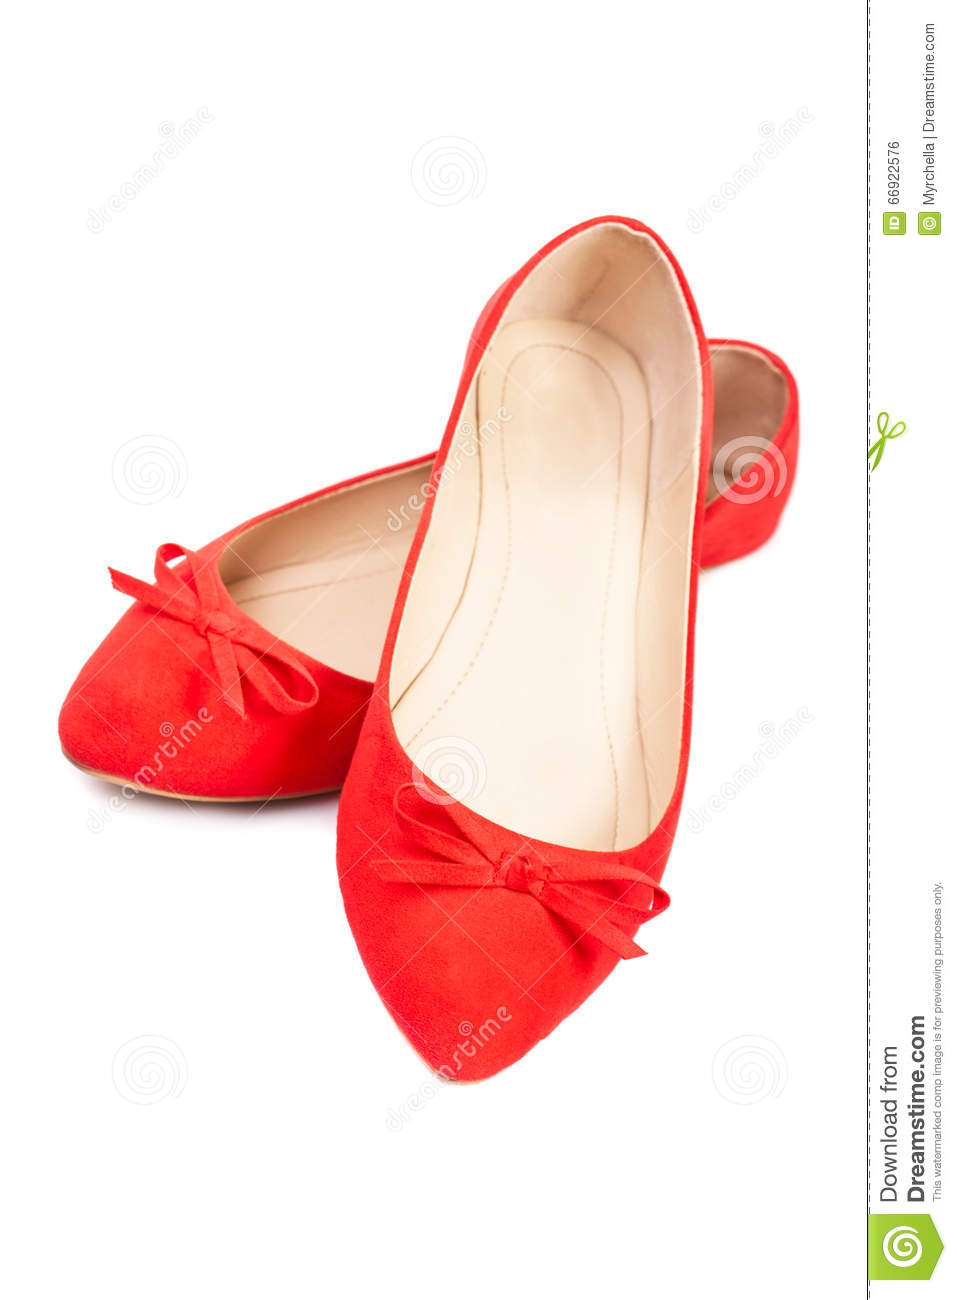 Pair of red female shoes, closeup